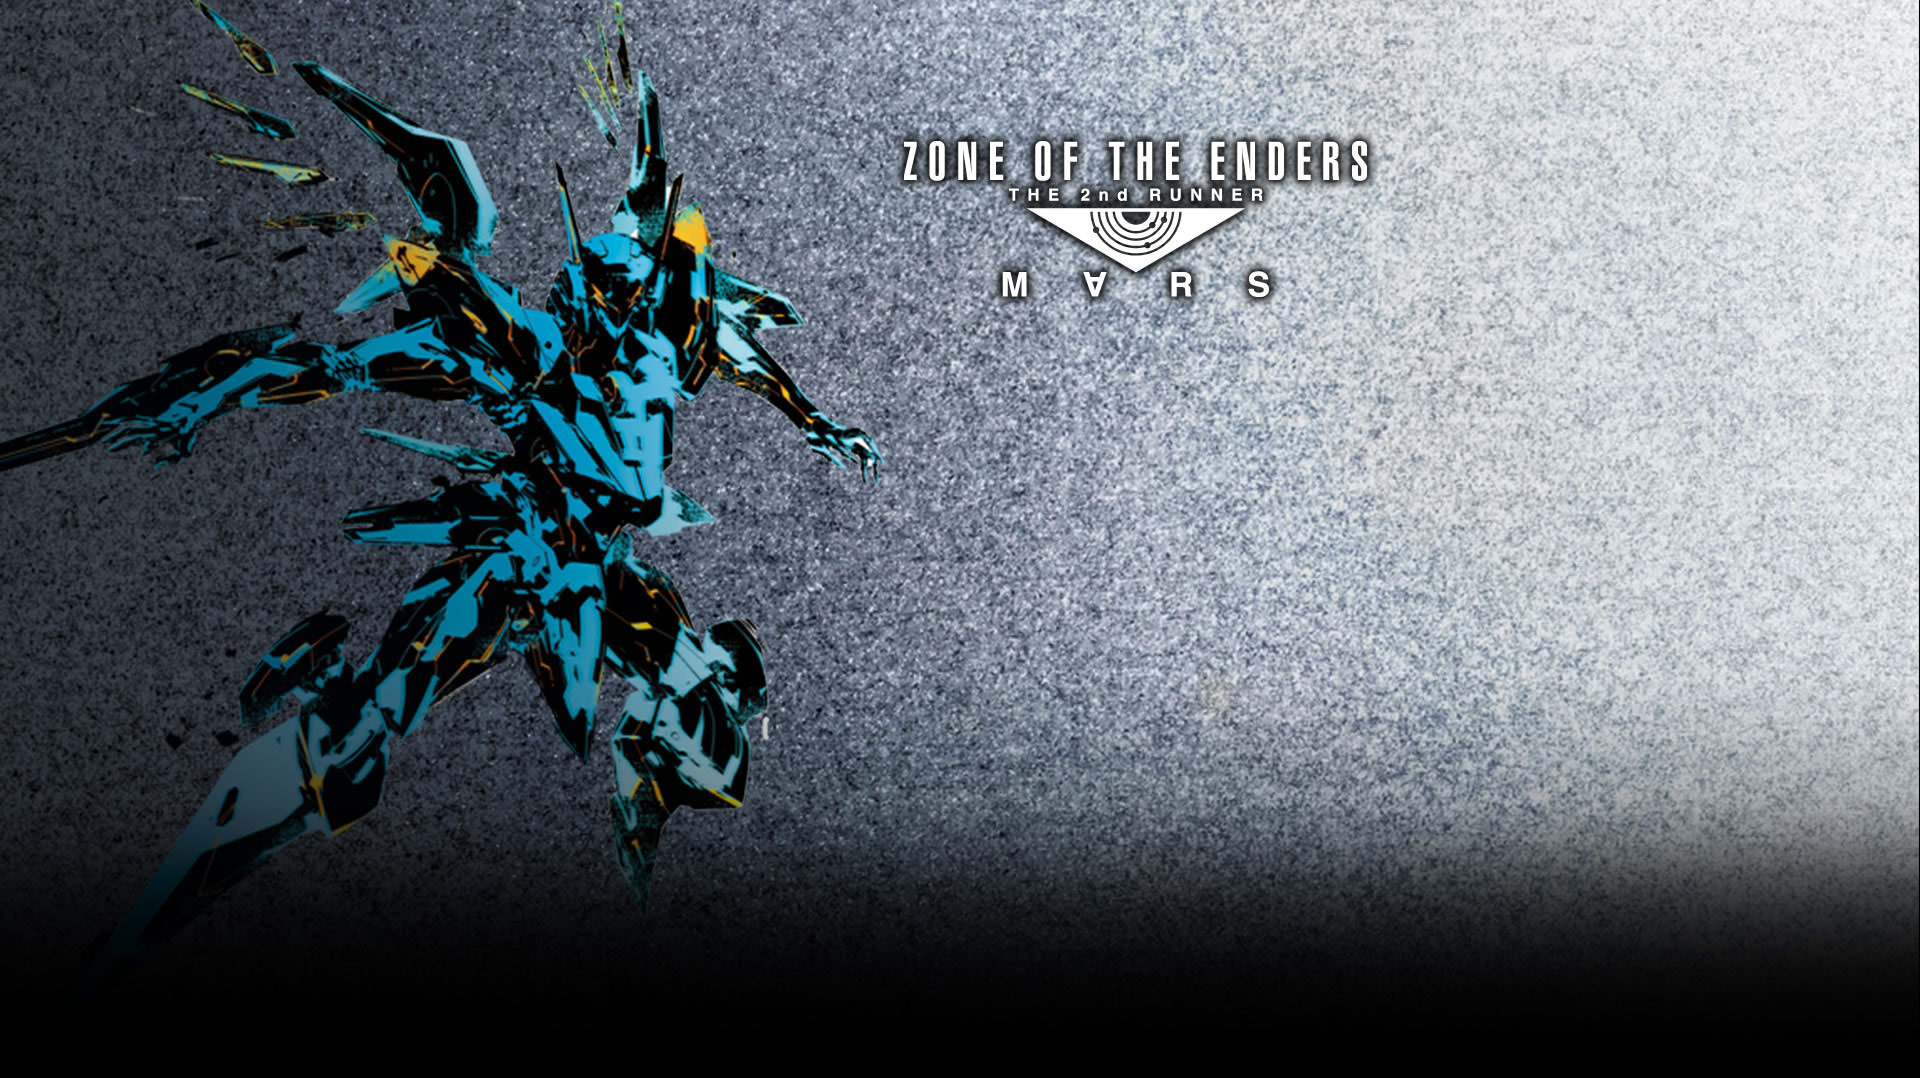 Zone of the Enders - The 2nd Runner - M∀RS